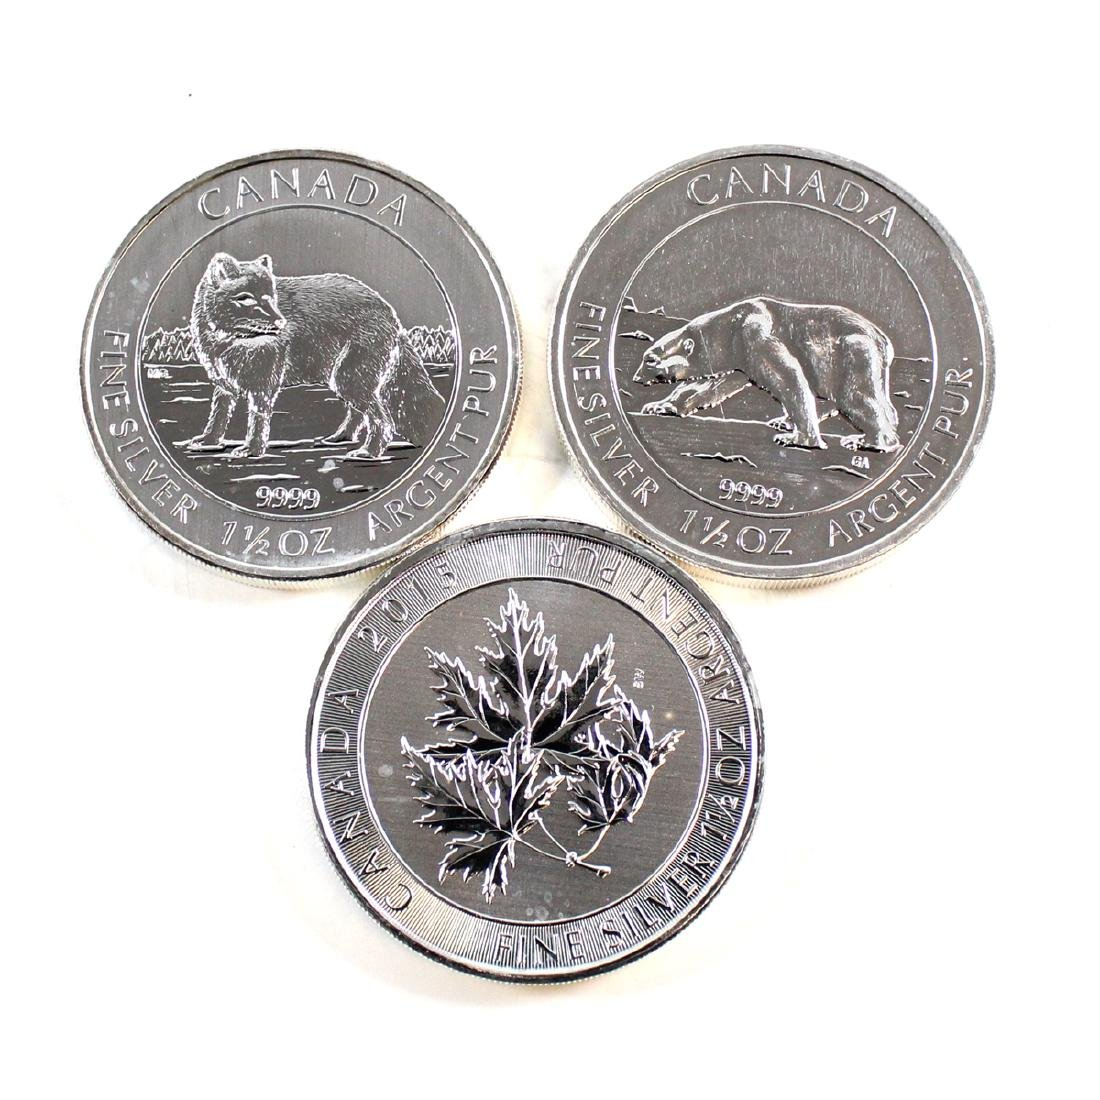 2013 Polar Bear, 2014 Arctic Fox, & 2015 Super Leaf $8